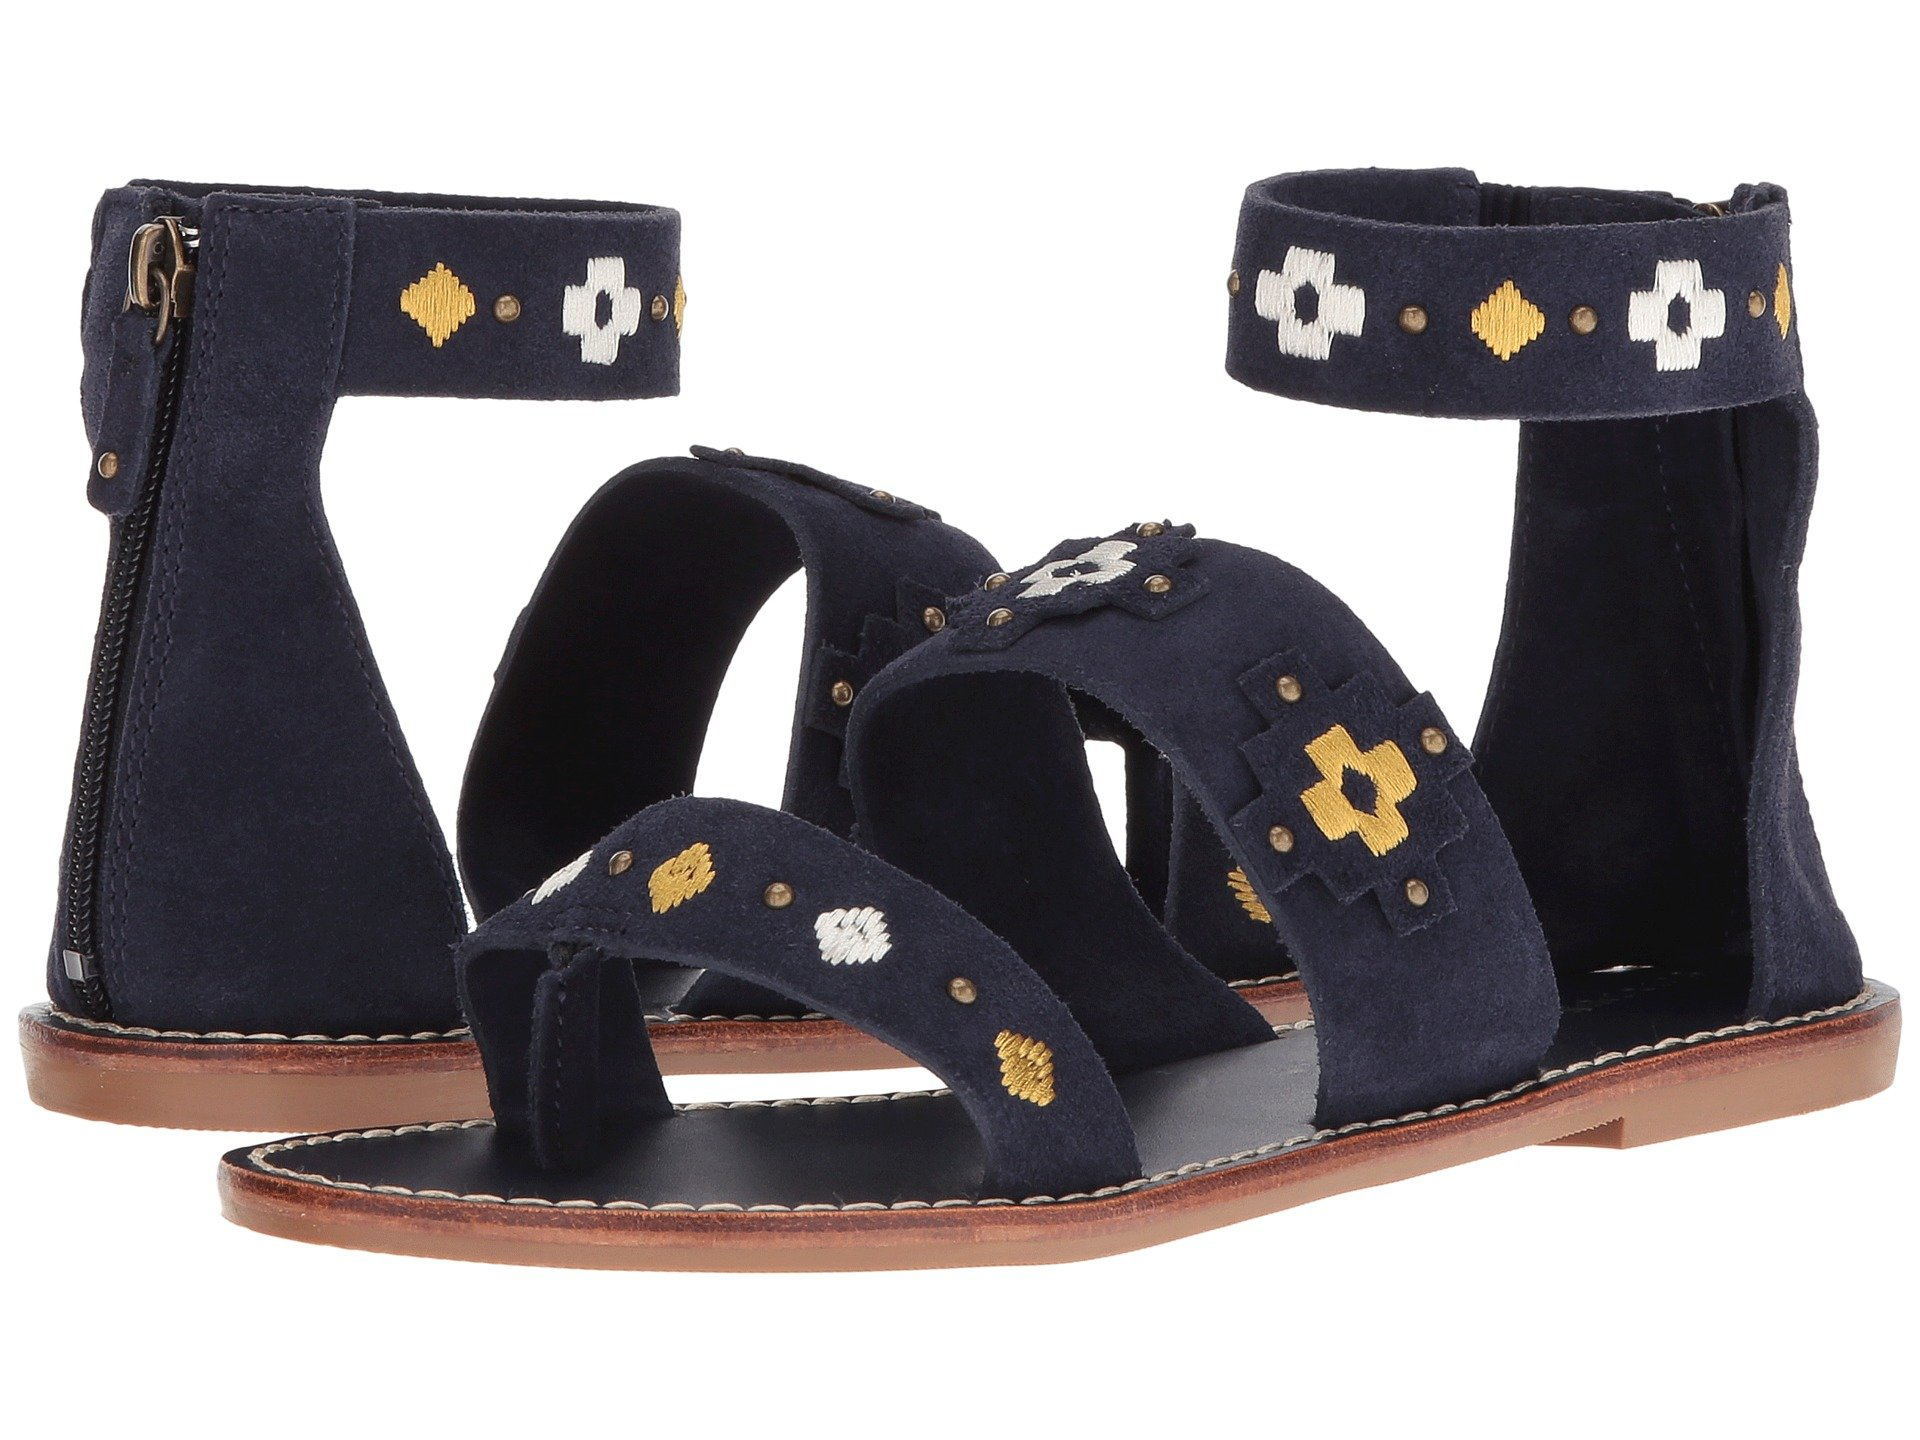 ff743b05442 SOLUDOS EMBROIDERED THREE BANDED SANDAL